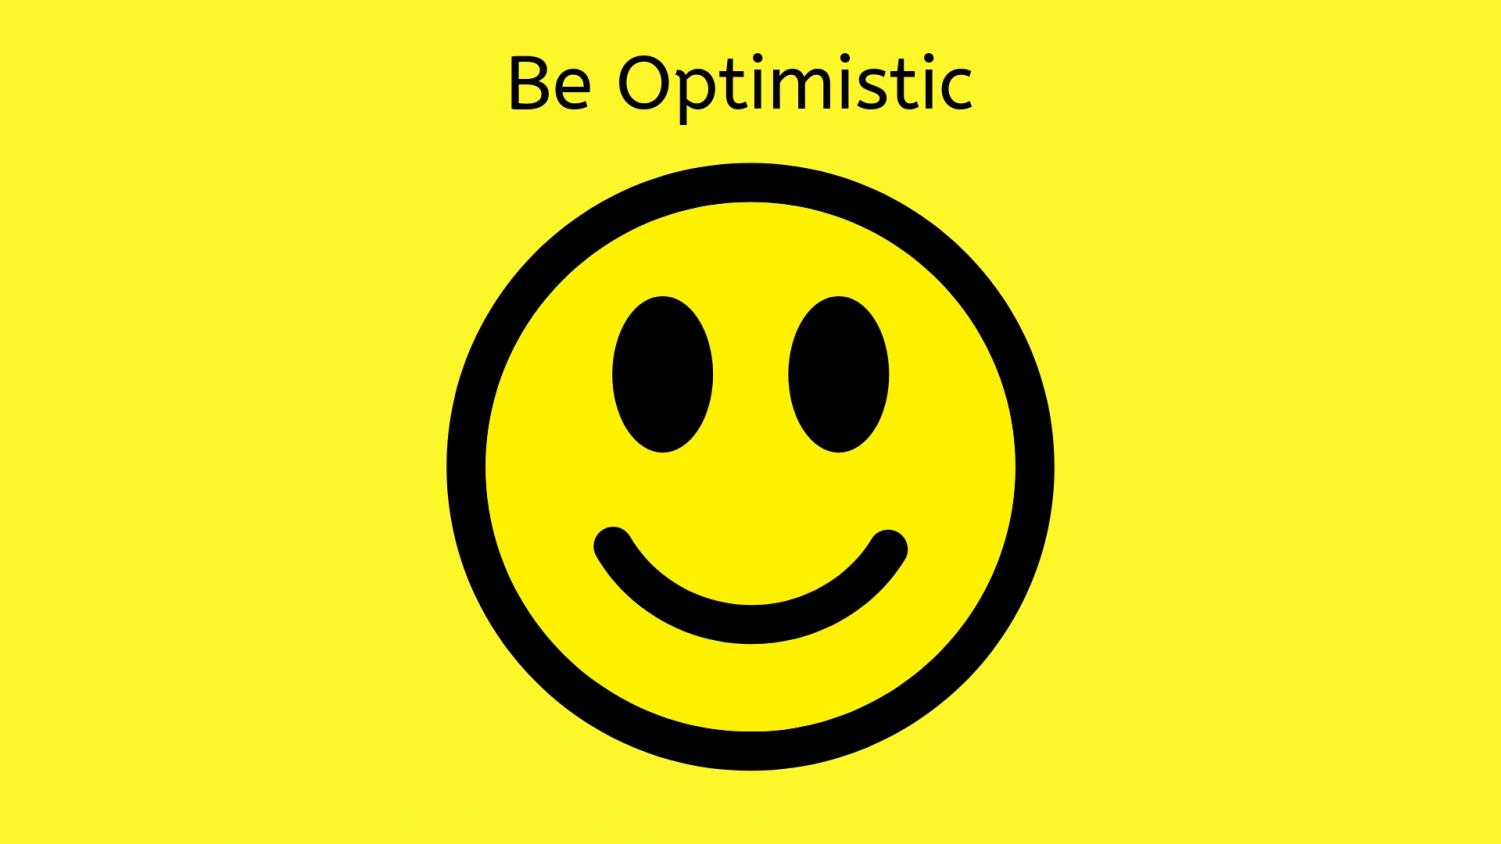 Be+optimistic+-+This+might+be+harder+for+those+who+see+life+as+glass+half+empty%2C+but+again%2C+take+it+slow.+Every+time+you+hear+yourself+say+%E2%80%9CI+can%E2%80%99t+do+it%E2%80%9D+or+%E2%80%9CI%E2%80%99m+not+smart+enough%E2%80%9D%2C+catch+yourself.+Turn+negative+comments+and+mindsets+into+encouraging+thoughts%2C+for+example%3A+%E2%80%9CI+can%E2%80%99t+do+this%E2%80%9D+turns+into+%E2%80%9CI%E2%80%99m+struggling+now%2C+but+I%E2%80%99ll+work+at+it+until+I%E2%80%99m+able+to+do+it.%E2%80%9D+